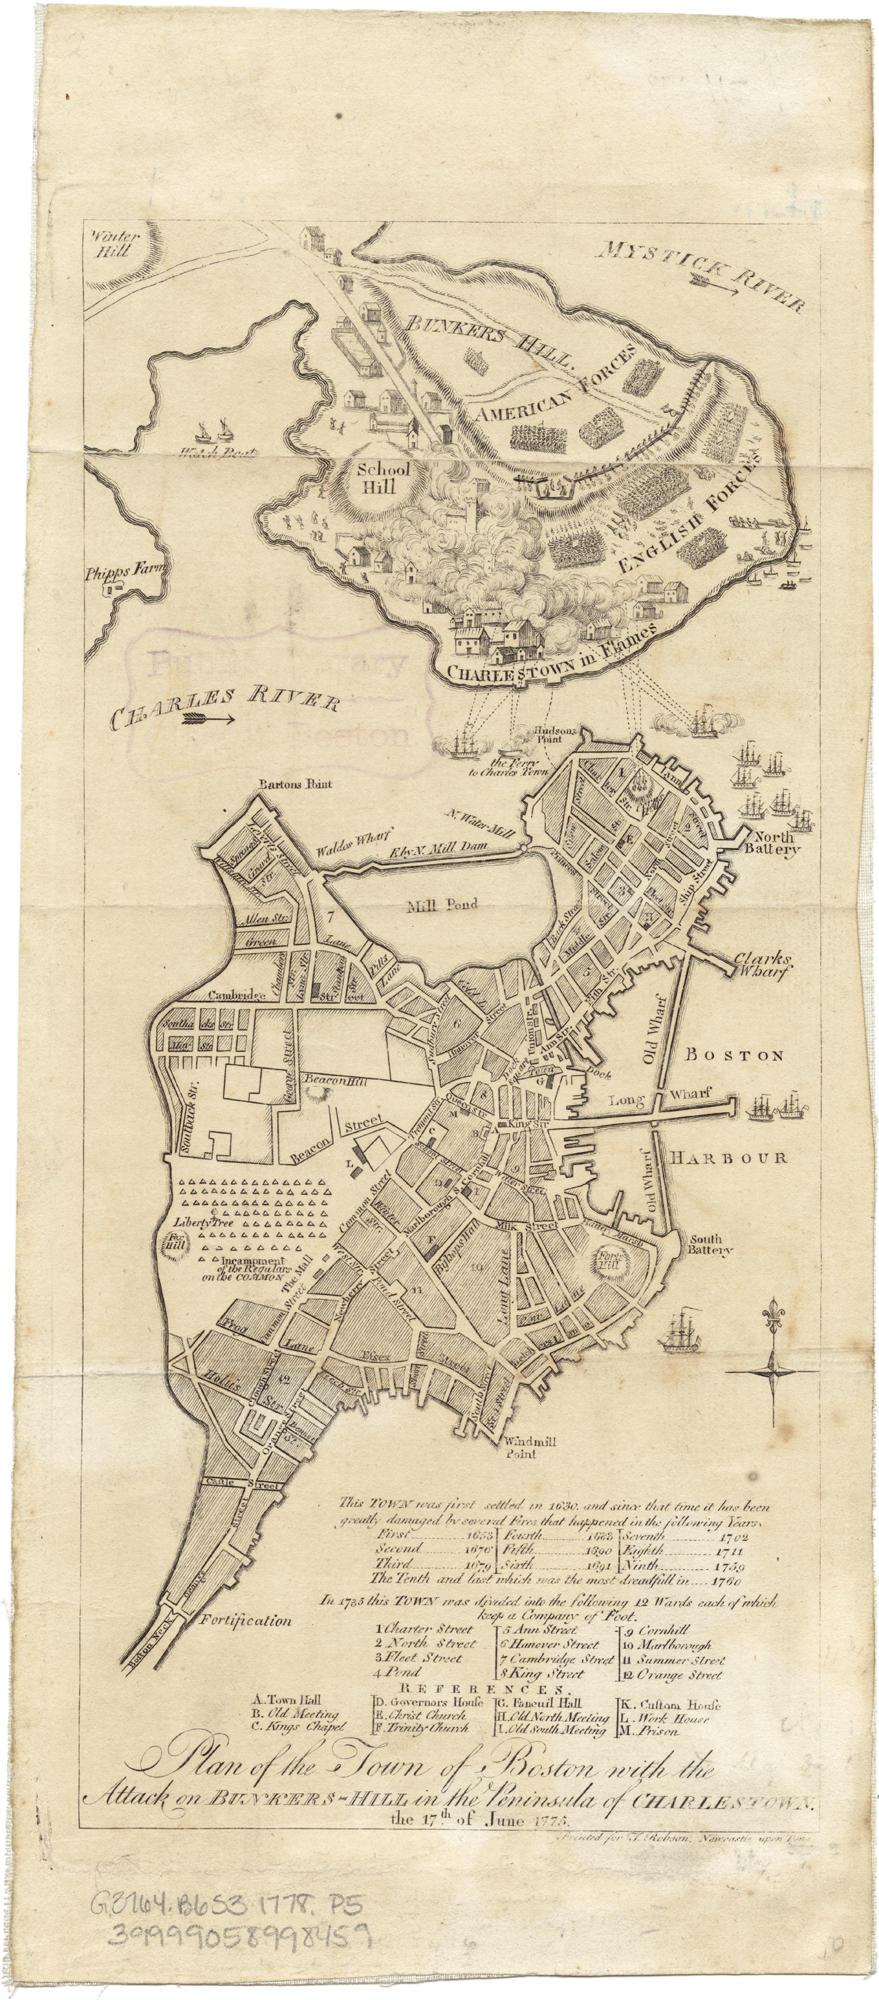 FilePlan of the town of Boston with